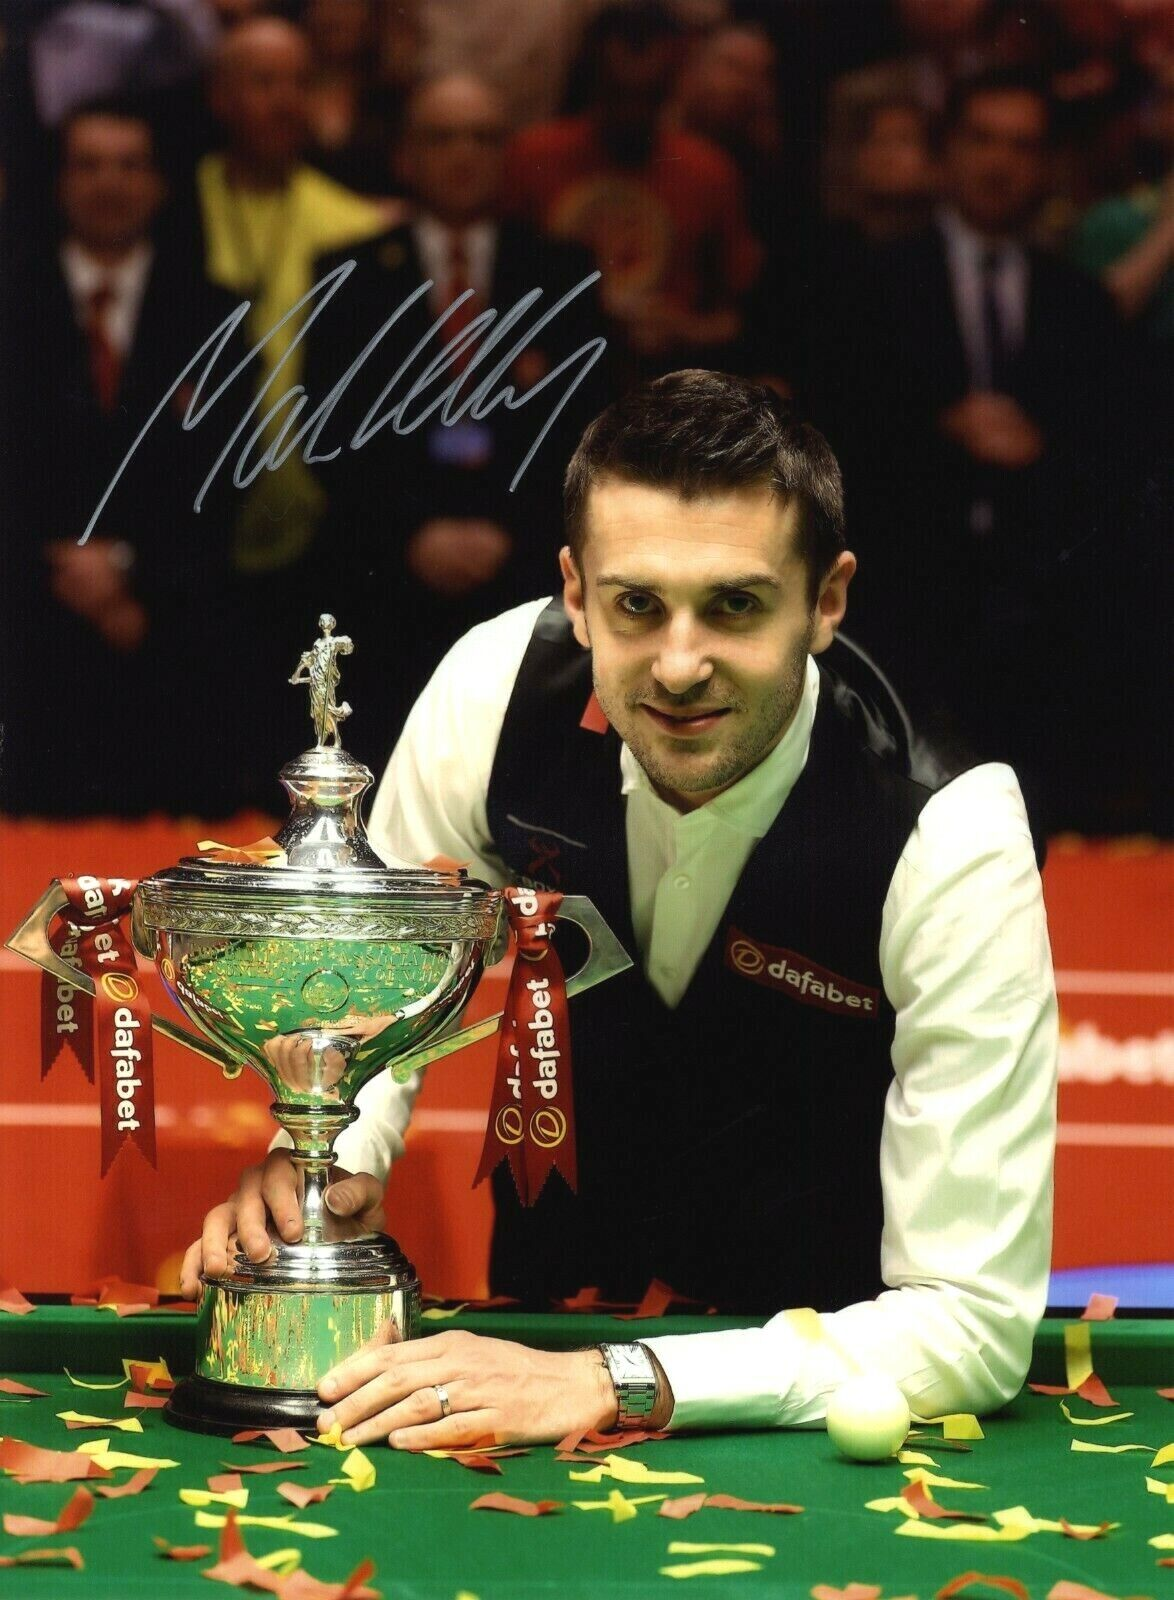 Mark Selby - English 2021 World Snooker Champion - In Person Signed Photograph.